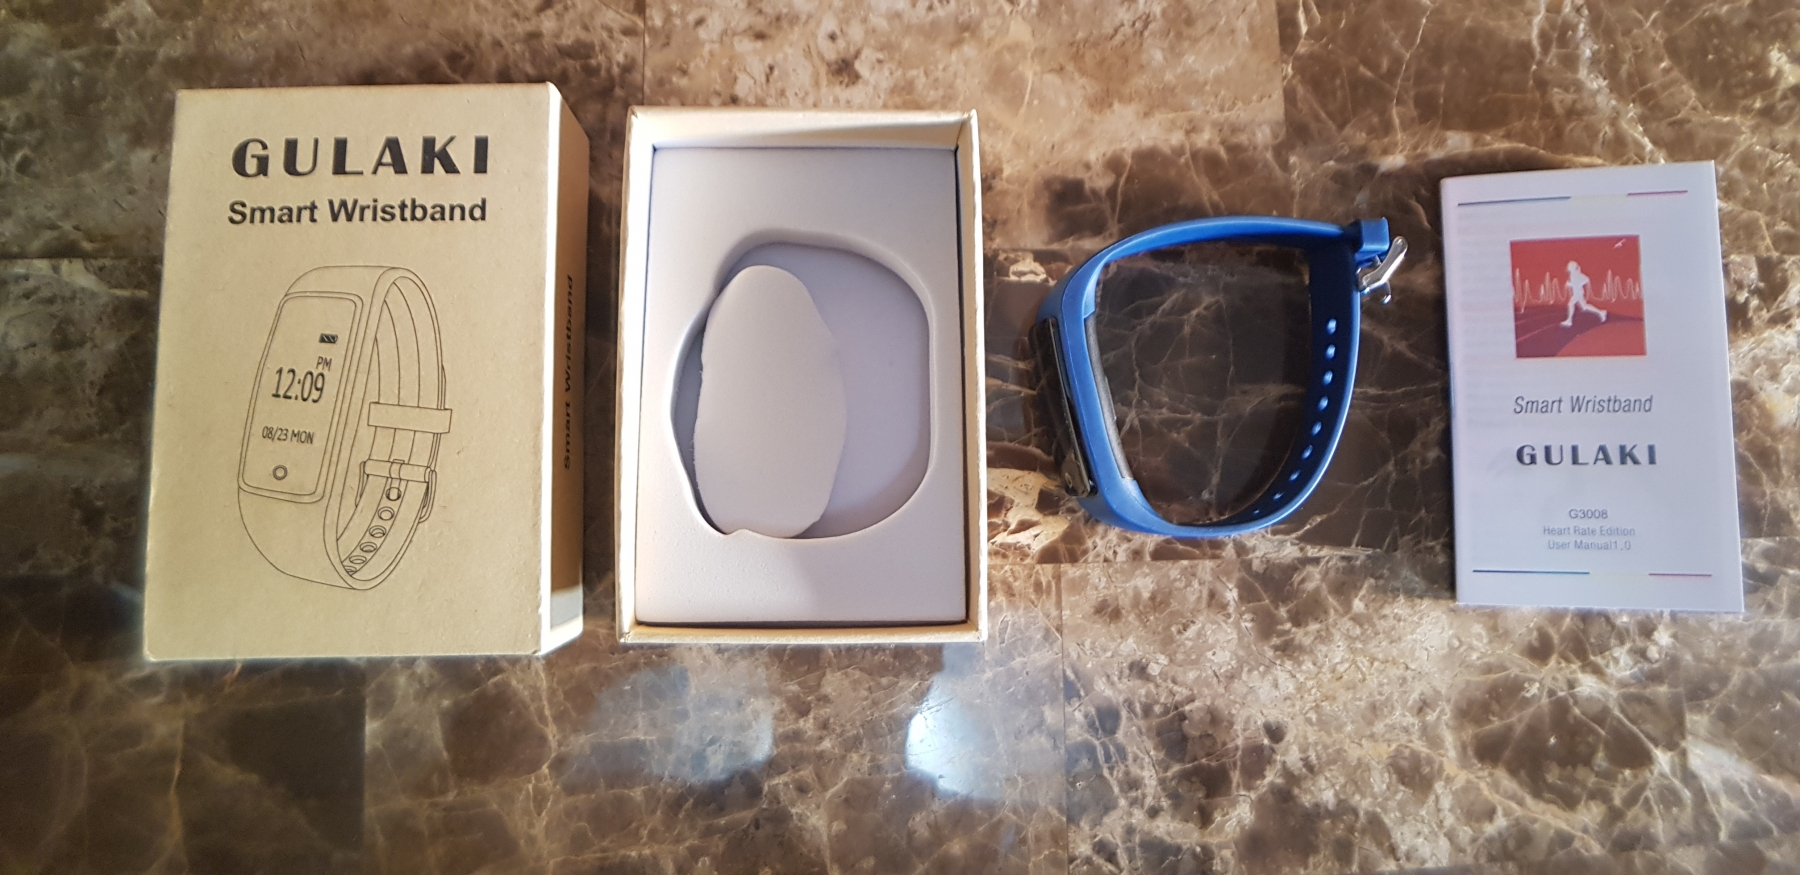 Smart Watch is fine works very well but not so good quality